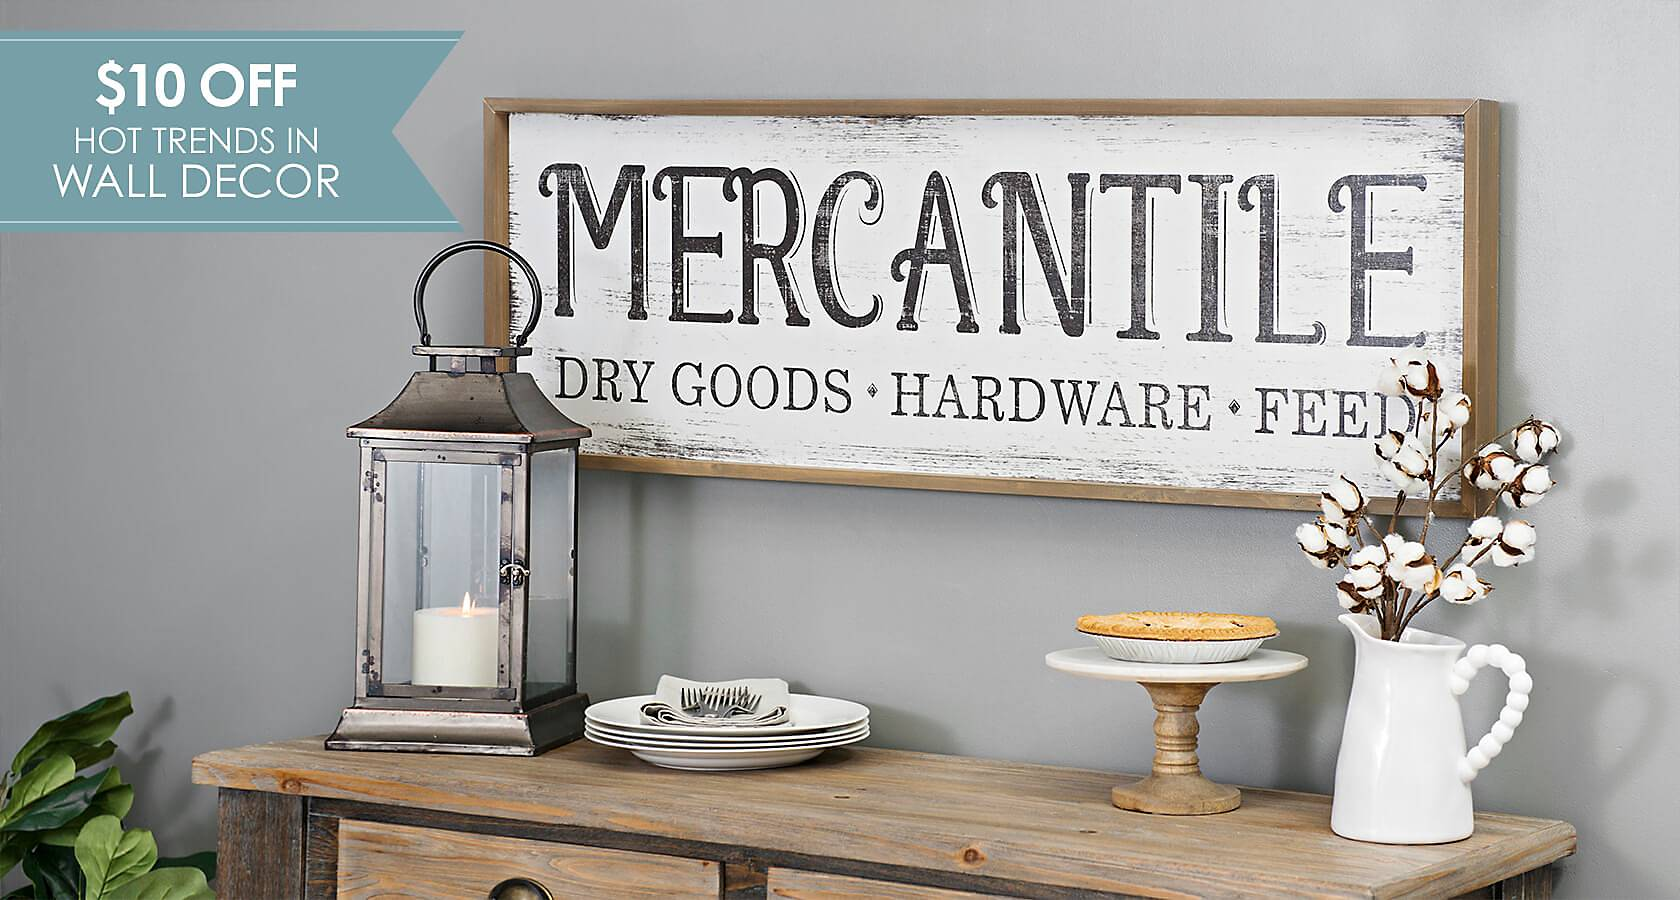 $10 Off Hot Trends in Wall Decor - Shop Now